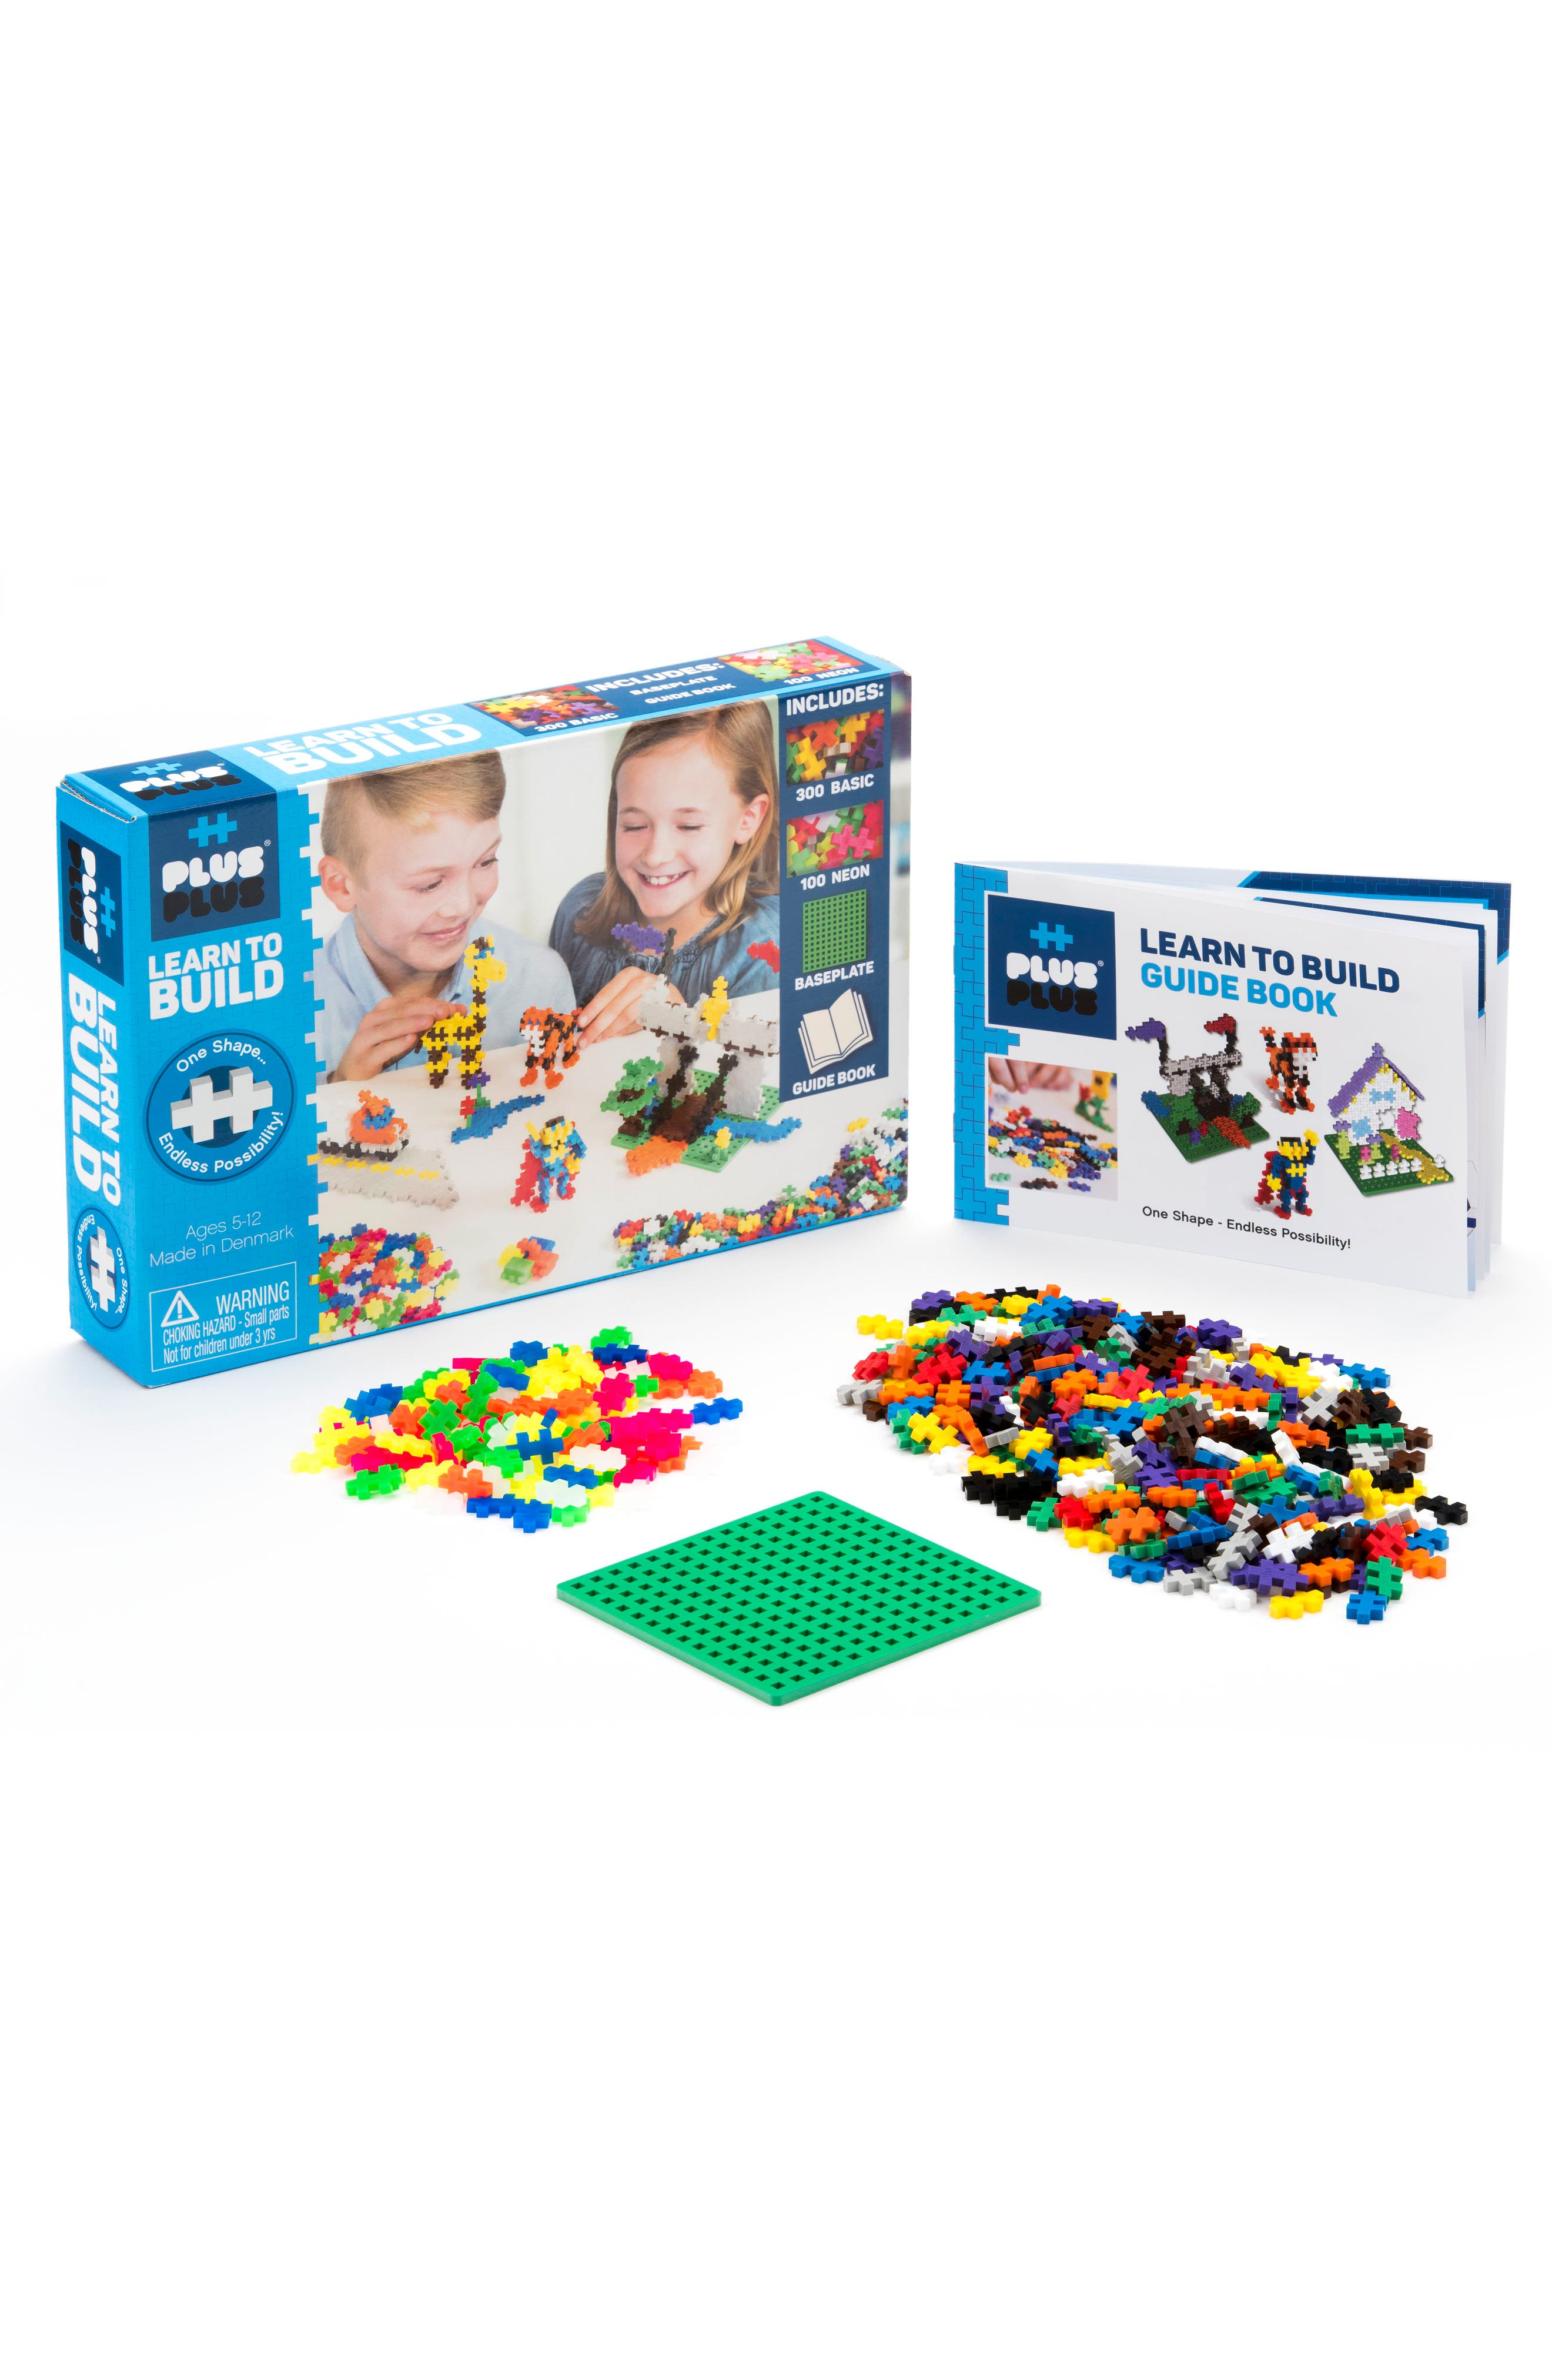 Plus-Plus USA Learn to Build - Basic 401-Piece Building Kit